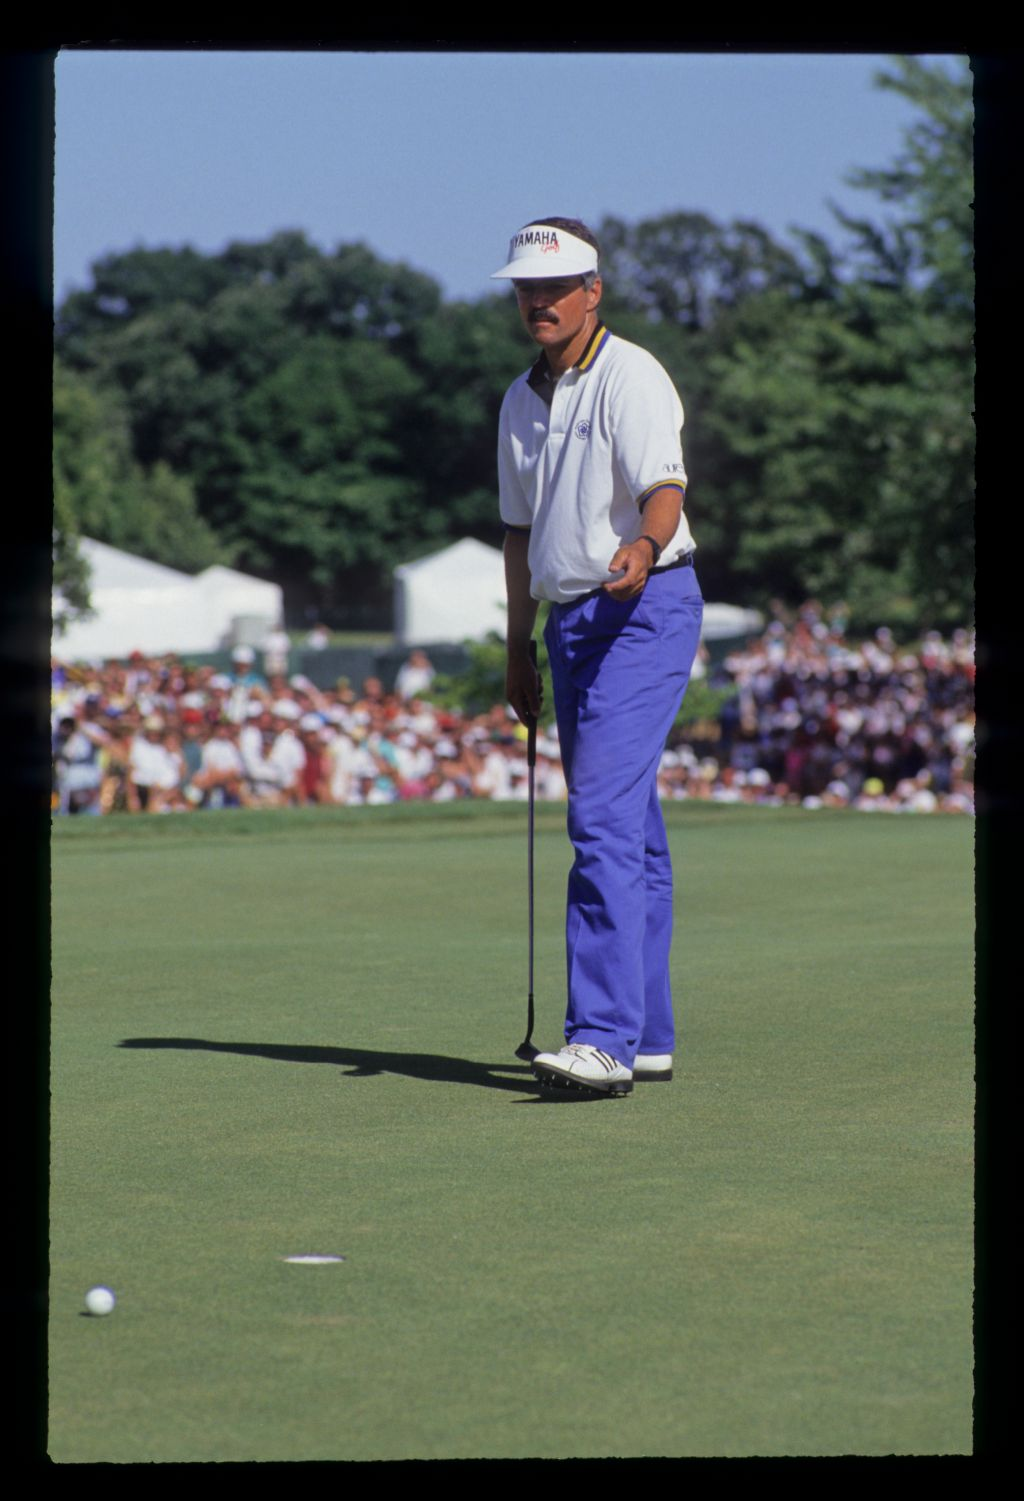 Scott Simpson berating a missed putt during the 1991 US Open